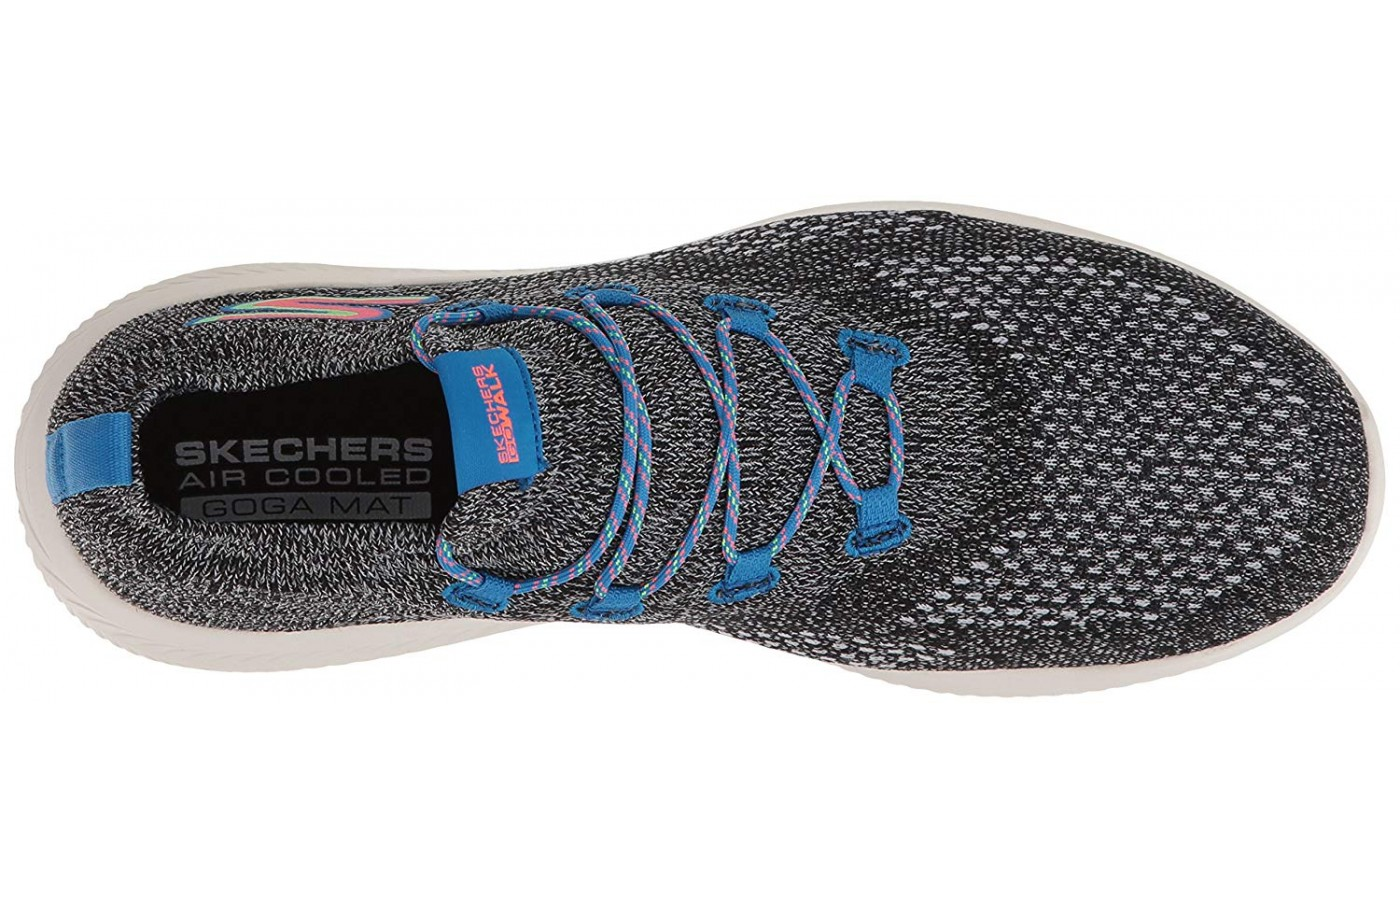 Skechers Go Walk Revolution Ultra Upper